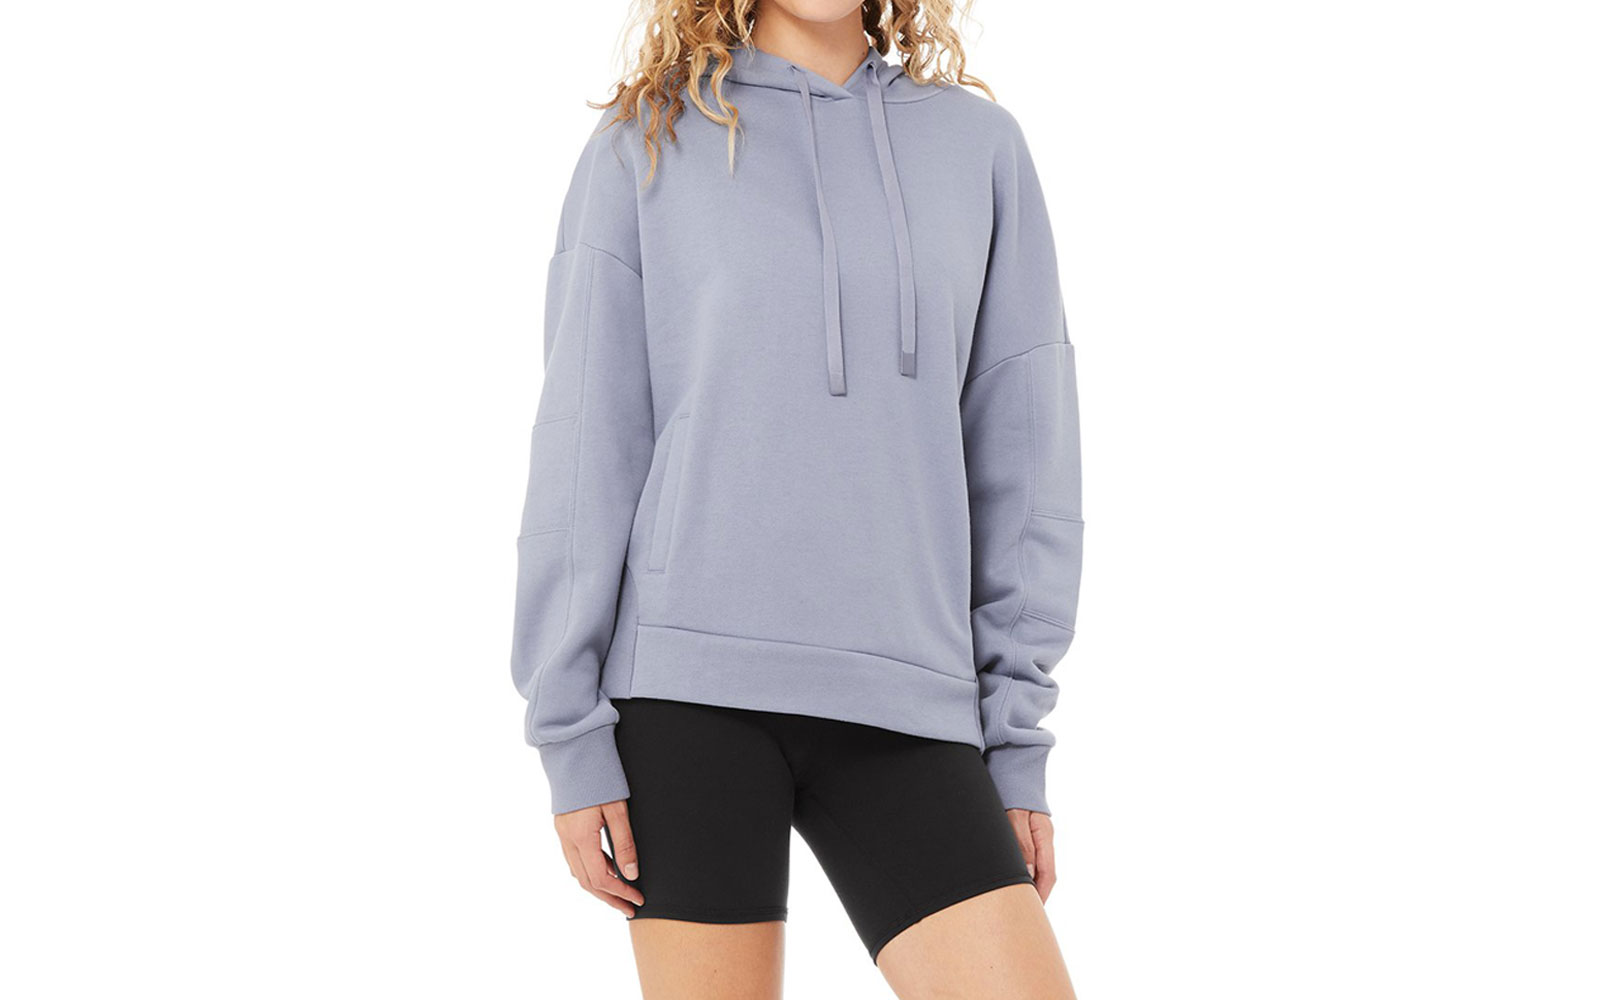 Light blue women's sweatshirt